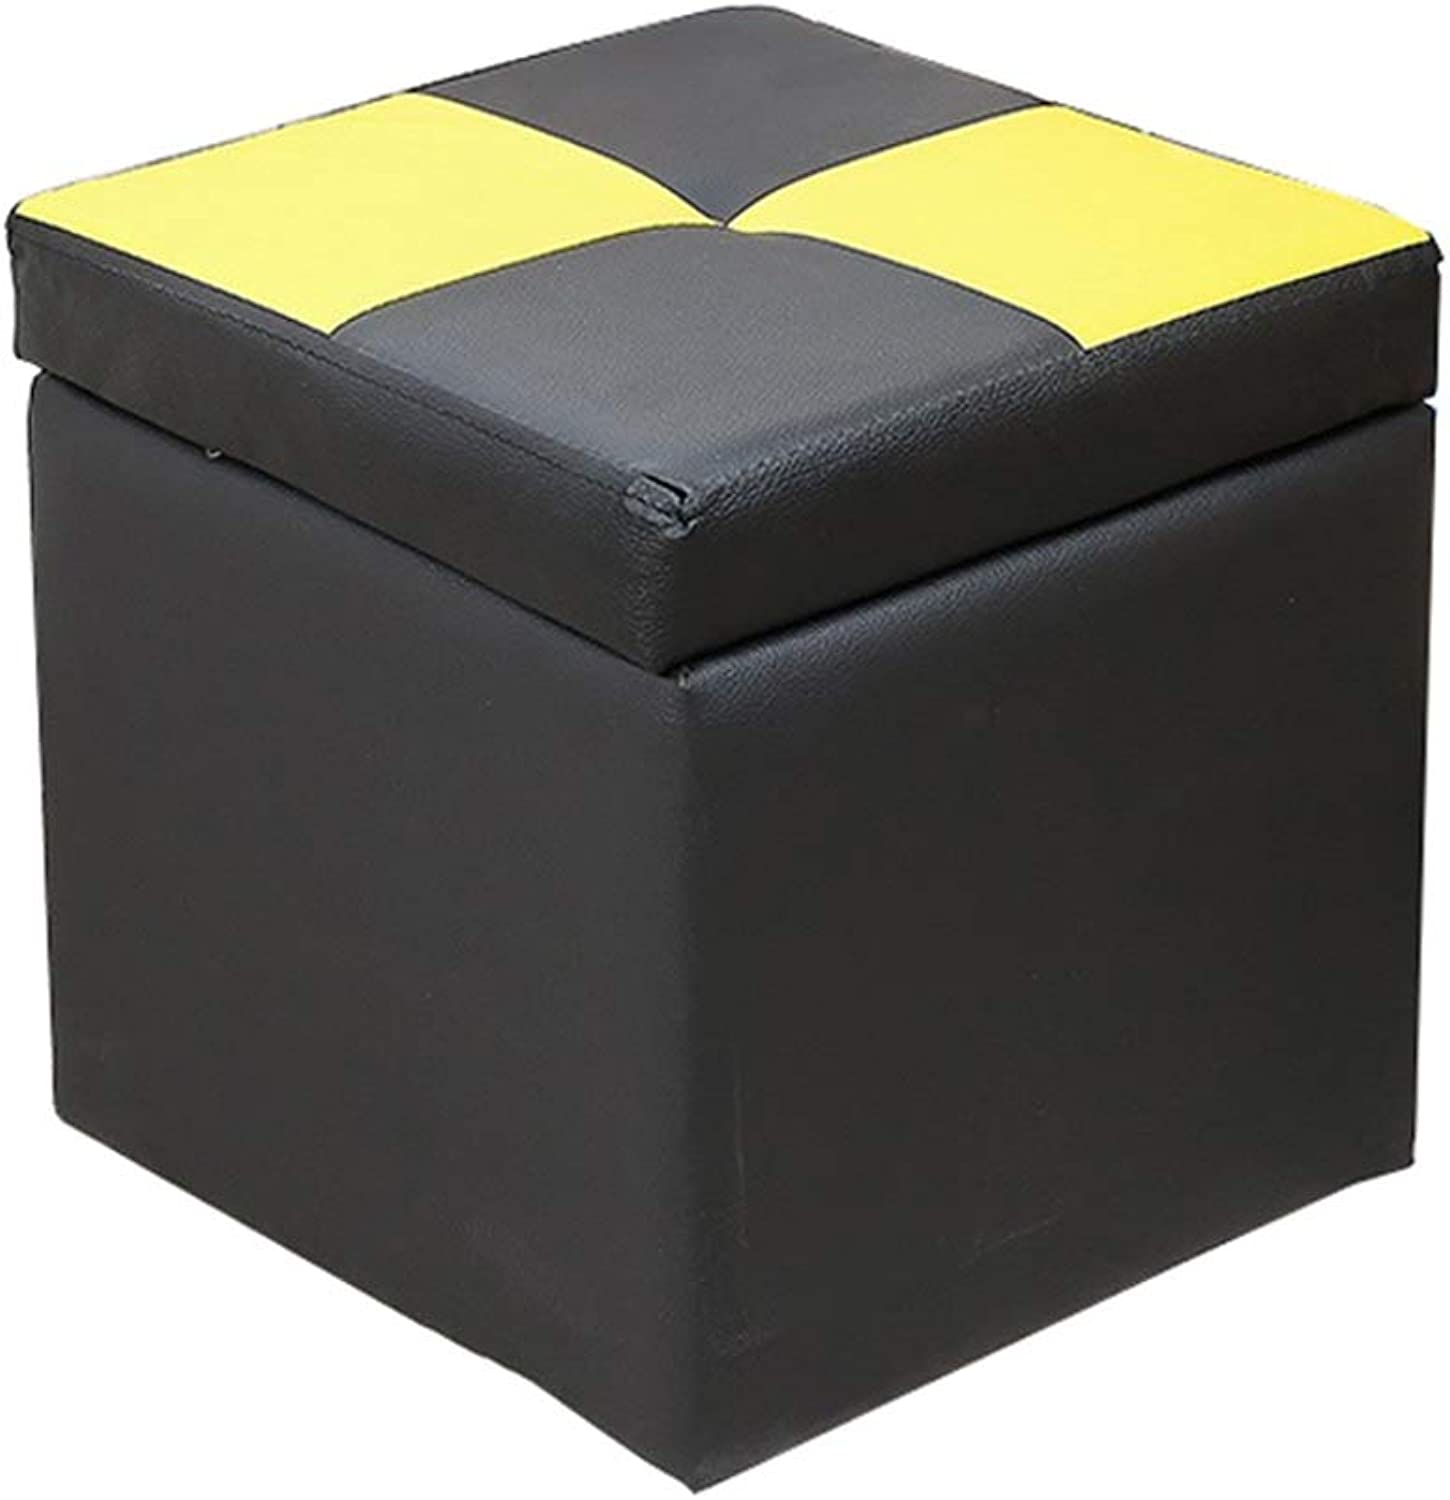 Storage Stool Creative Storage Stool Wooden Change shoes Stool PU Faux Leather Footstool Pouffe Footrest Single Seat Cube Box(Black) Bed End Stool (color    3)